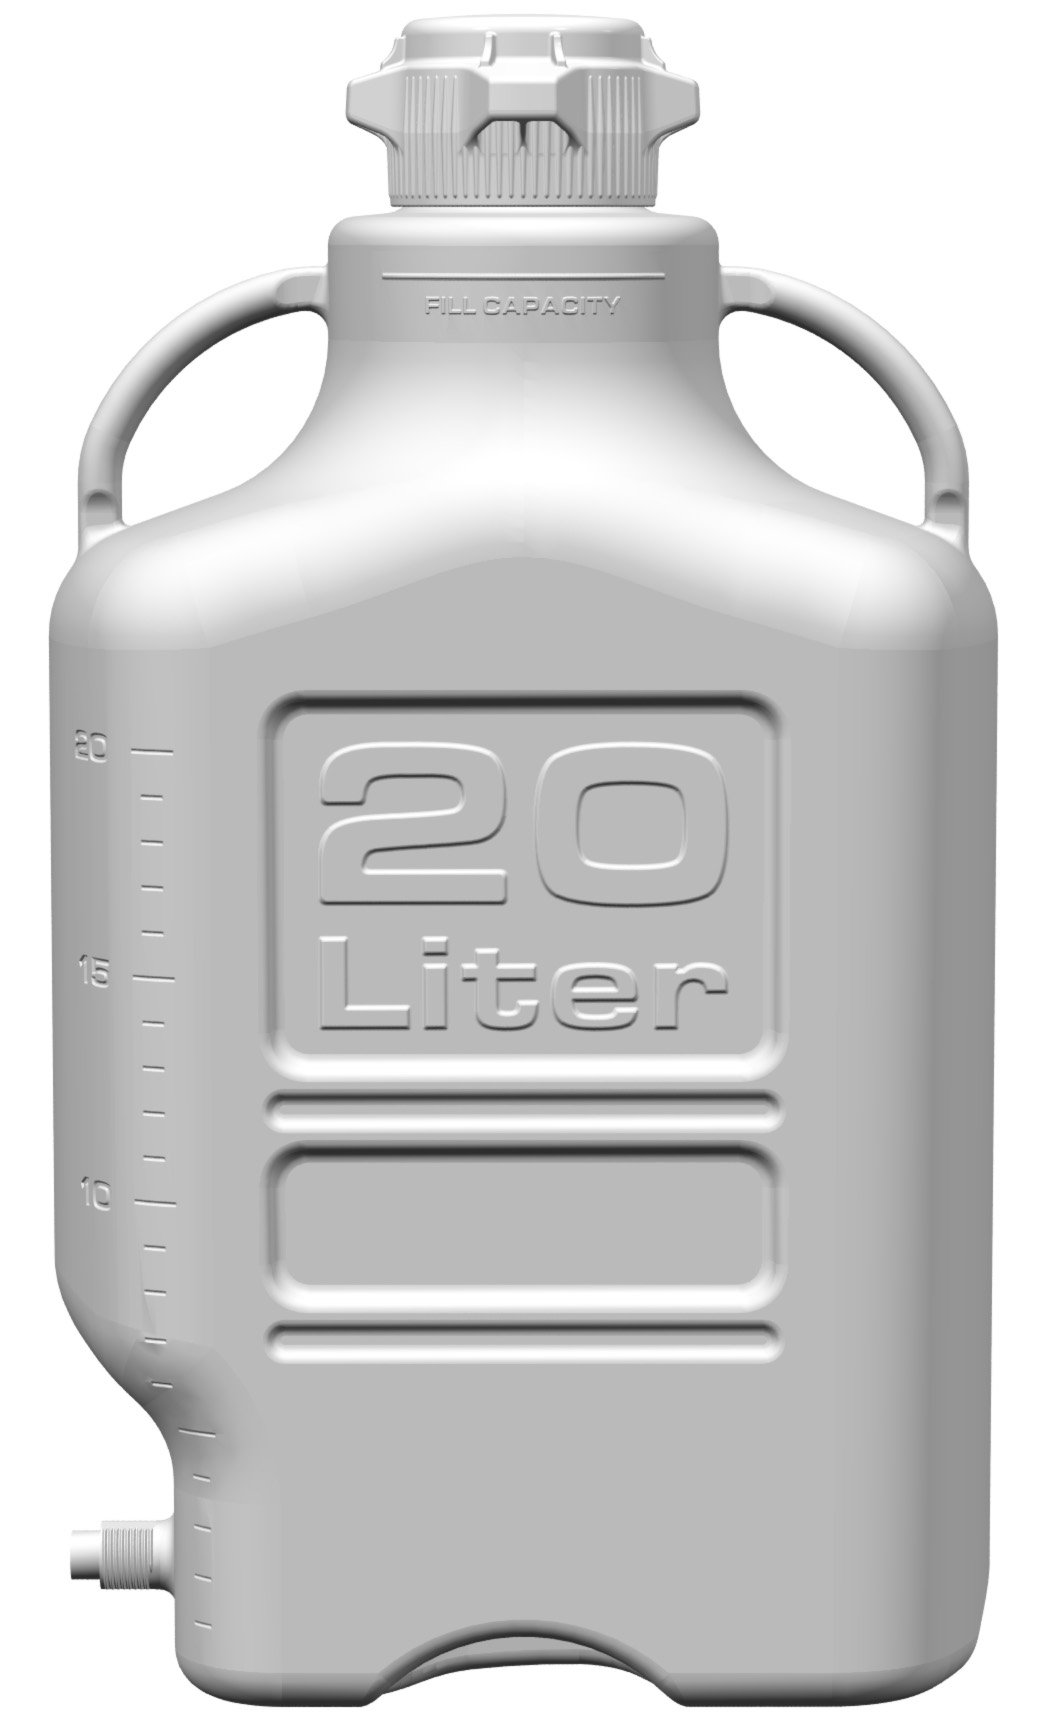 EZgrip 20L (5 Gal) HDPE Space Saving Carboy with Leakproof Spigot, 83mm (83B) VersaCap and 26.5L Max Capacity